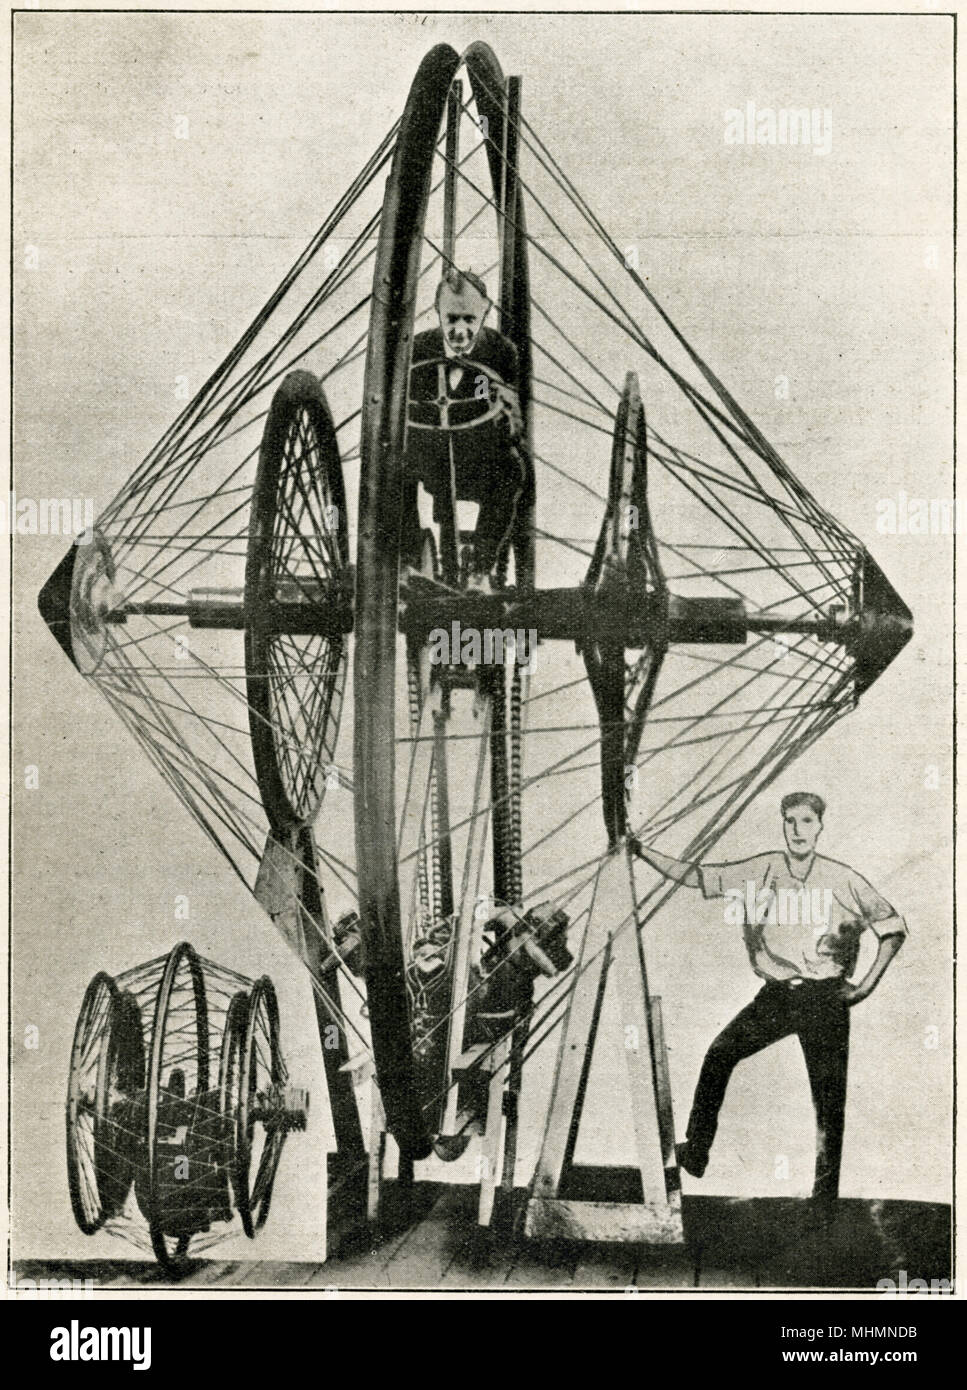 'A New Terror of the Road' - the quite remarkable invention of Professor E. J. Christie of marion Ohio - a huge Gyroscopic Wheel Unicycle, which the creator claimed would be able to hit speeds in excess of 400mph...!     Date: 1923 - Stock Image